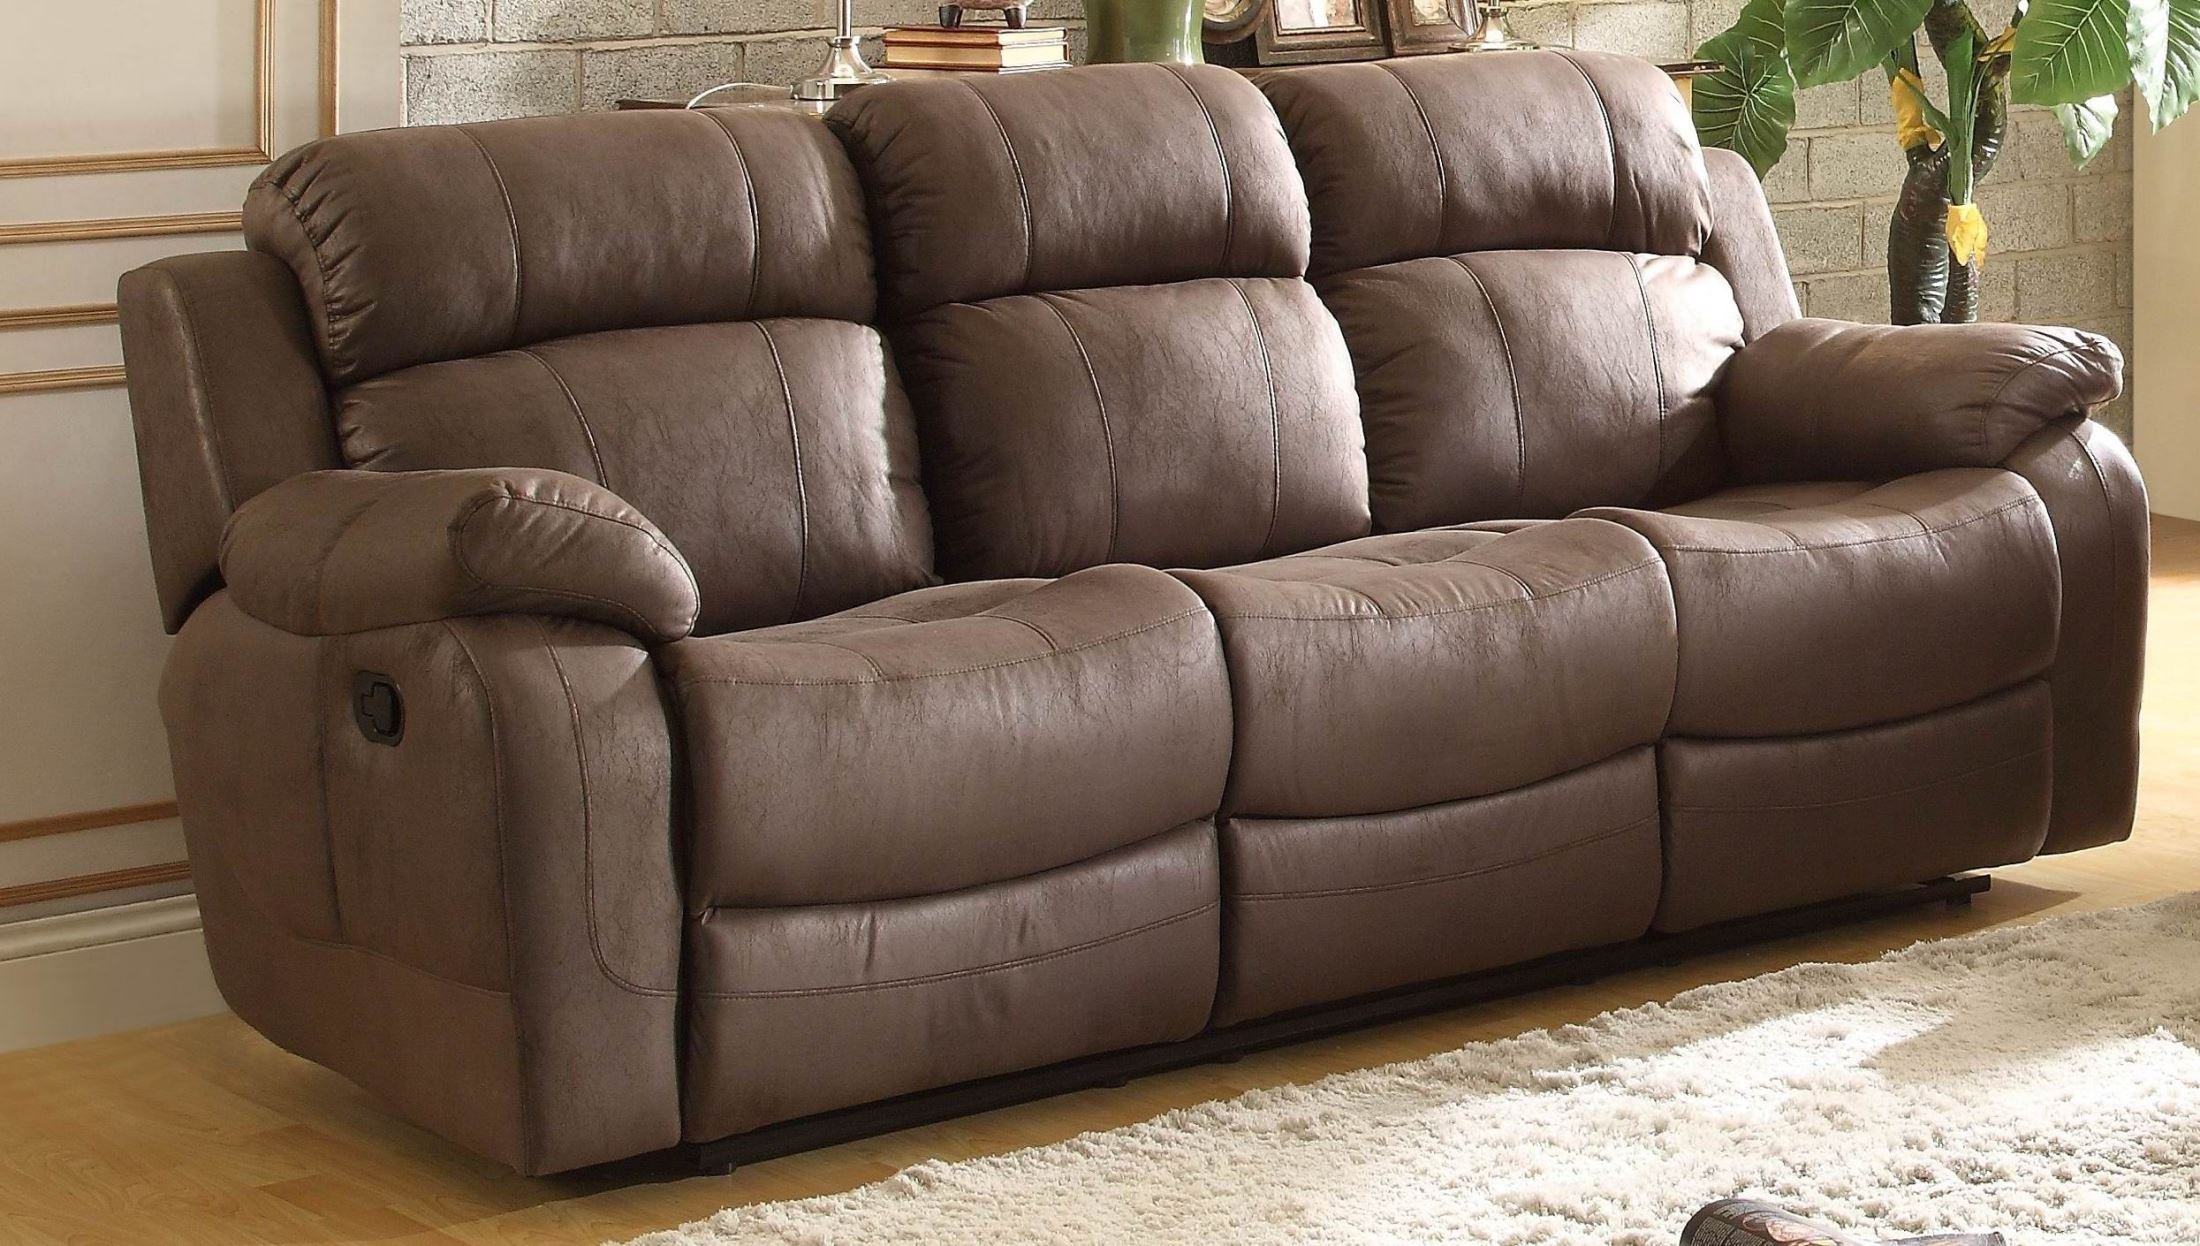 Marille Brown Double Reclining Sofa With Drop Down Cup Holder 9724bj 3 Homelegance